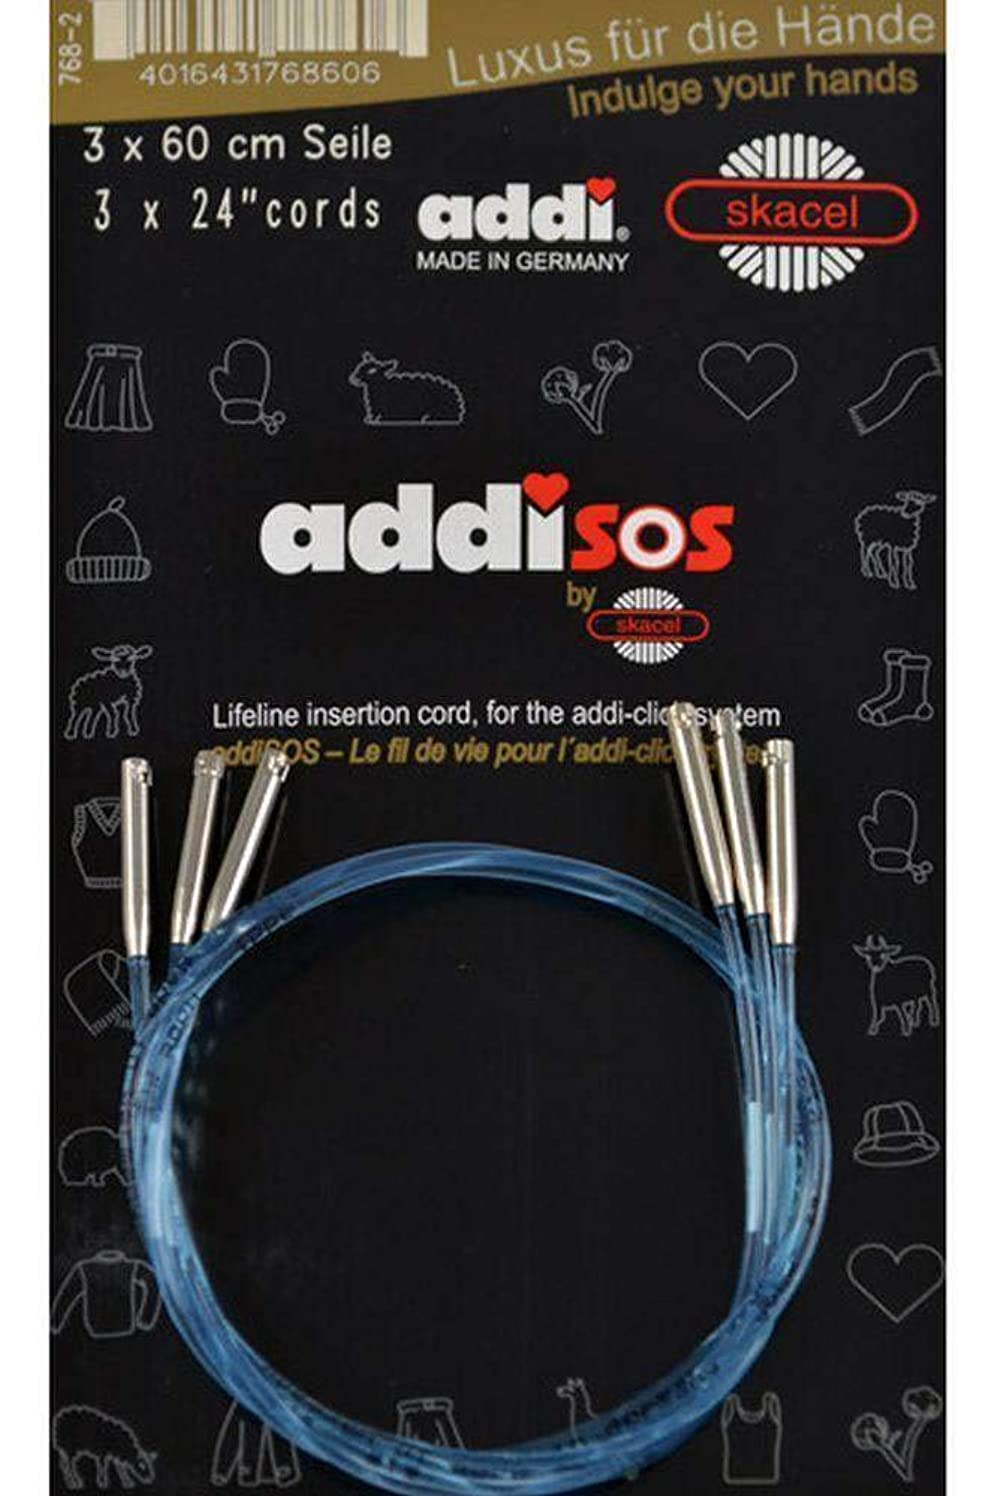 addi Click Interchangeable Knitting Needle SOS Skacel Exclusive Blue Cords 24 inch (60cm) 3-Pack Without Connectors